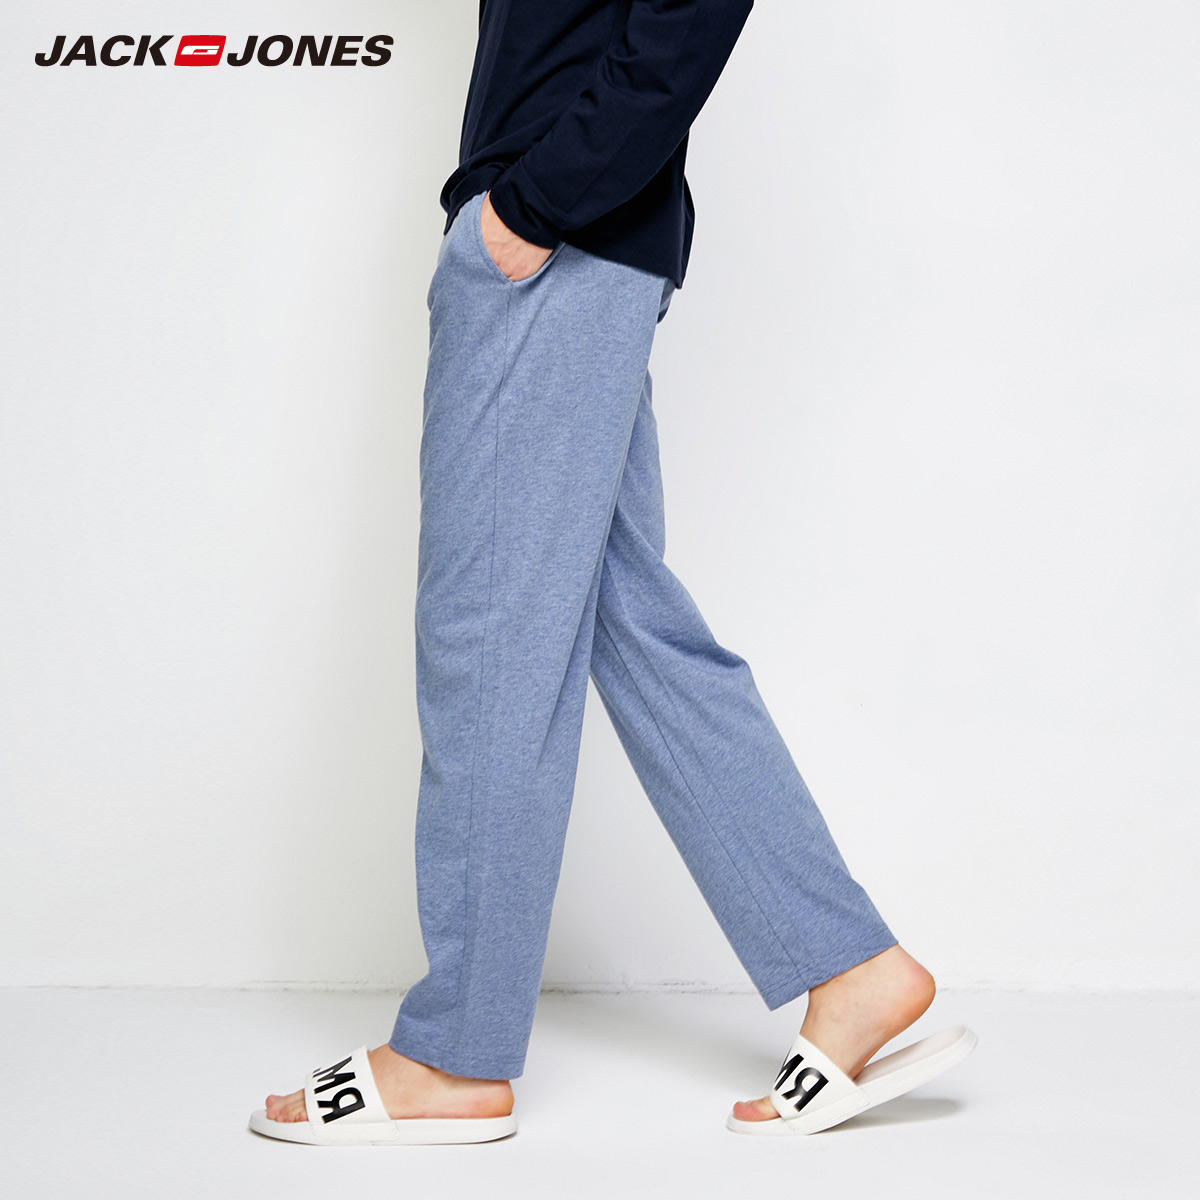 Jack Jones Spring Summer New Men's 100% Cotton Sweatpants Men Trousers Track Pants | 2183HC503